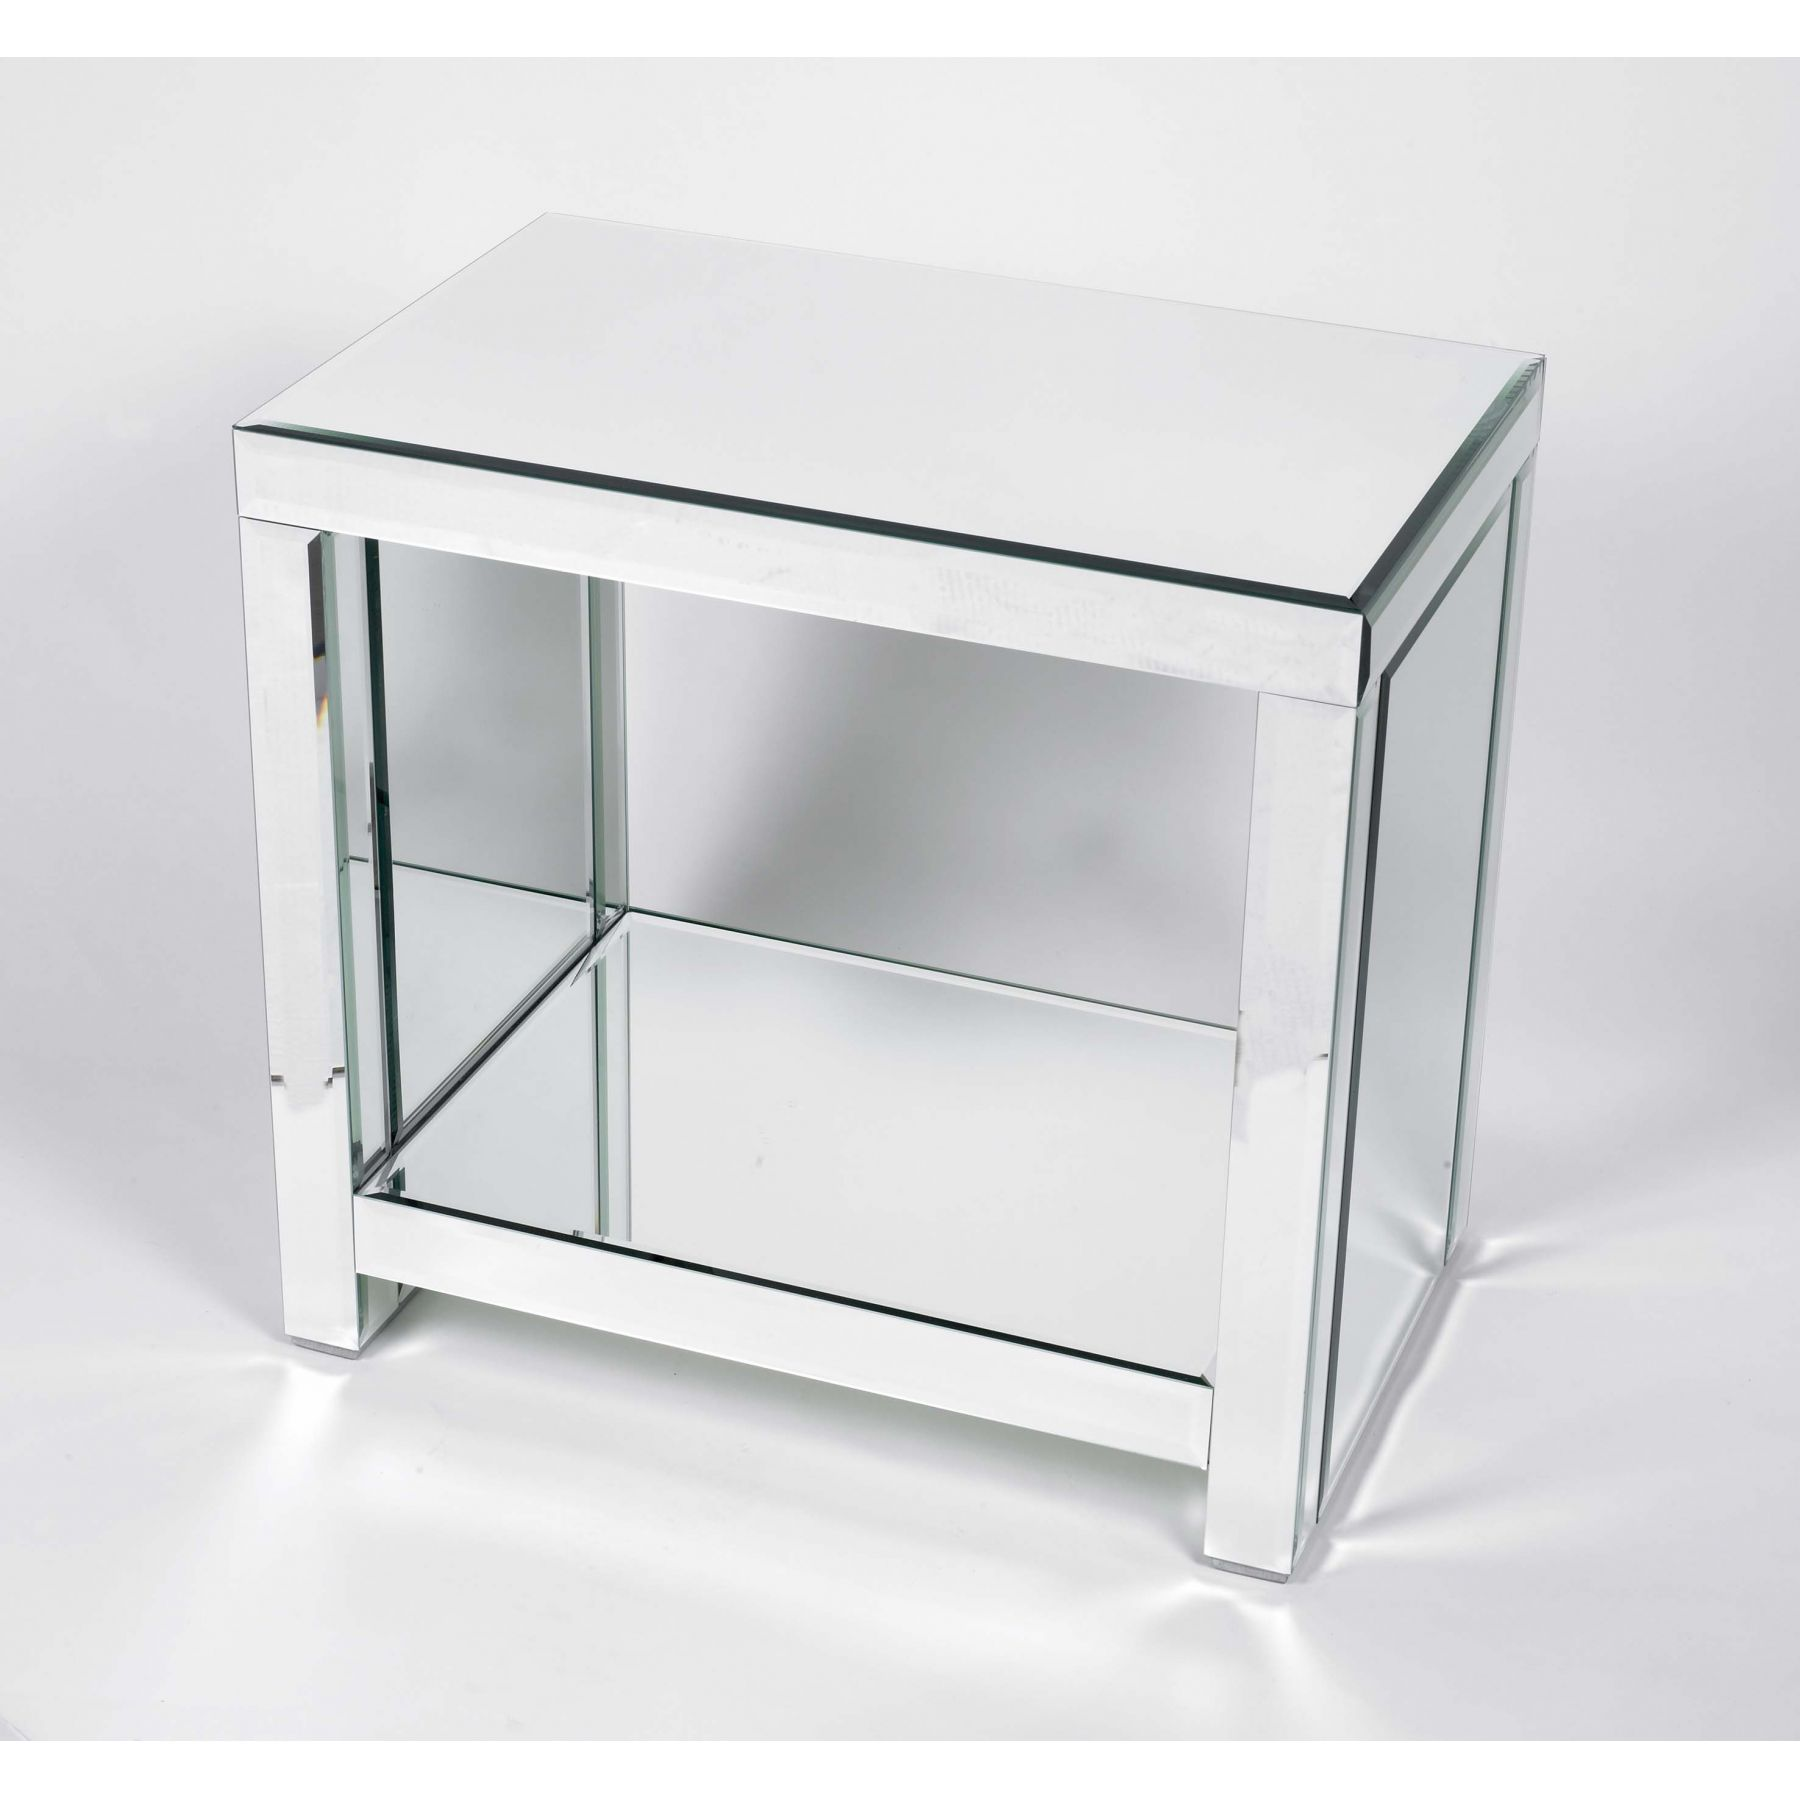 directors chair the outrageous unbelievable target end tables and free mirrored side table mirrors bedside with drawers latest coffee pedestal ivory marble amyvanmeterevents small